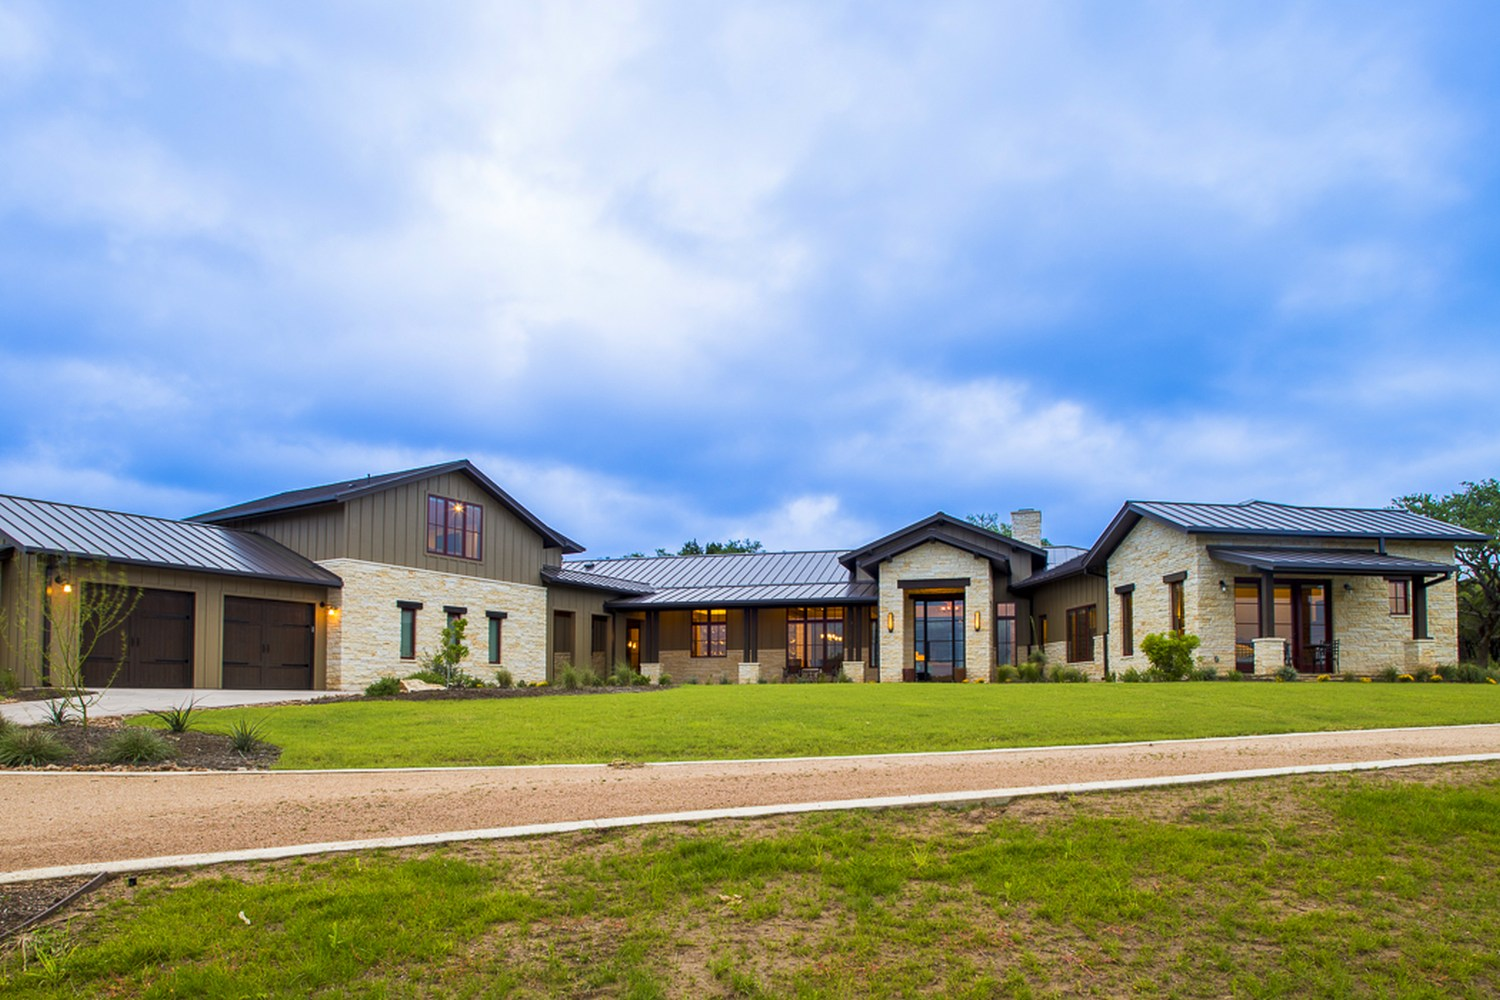 Architecture Home Hill country farmhouse exterior